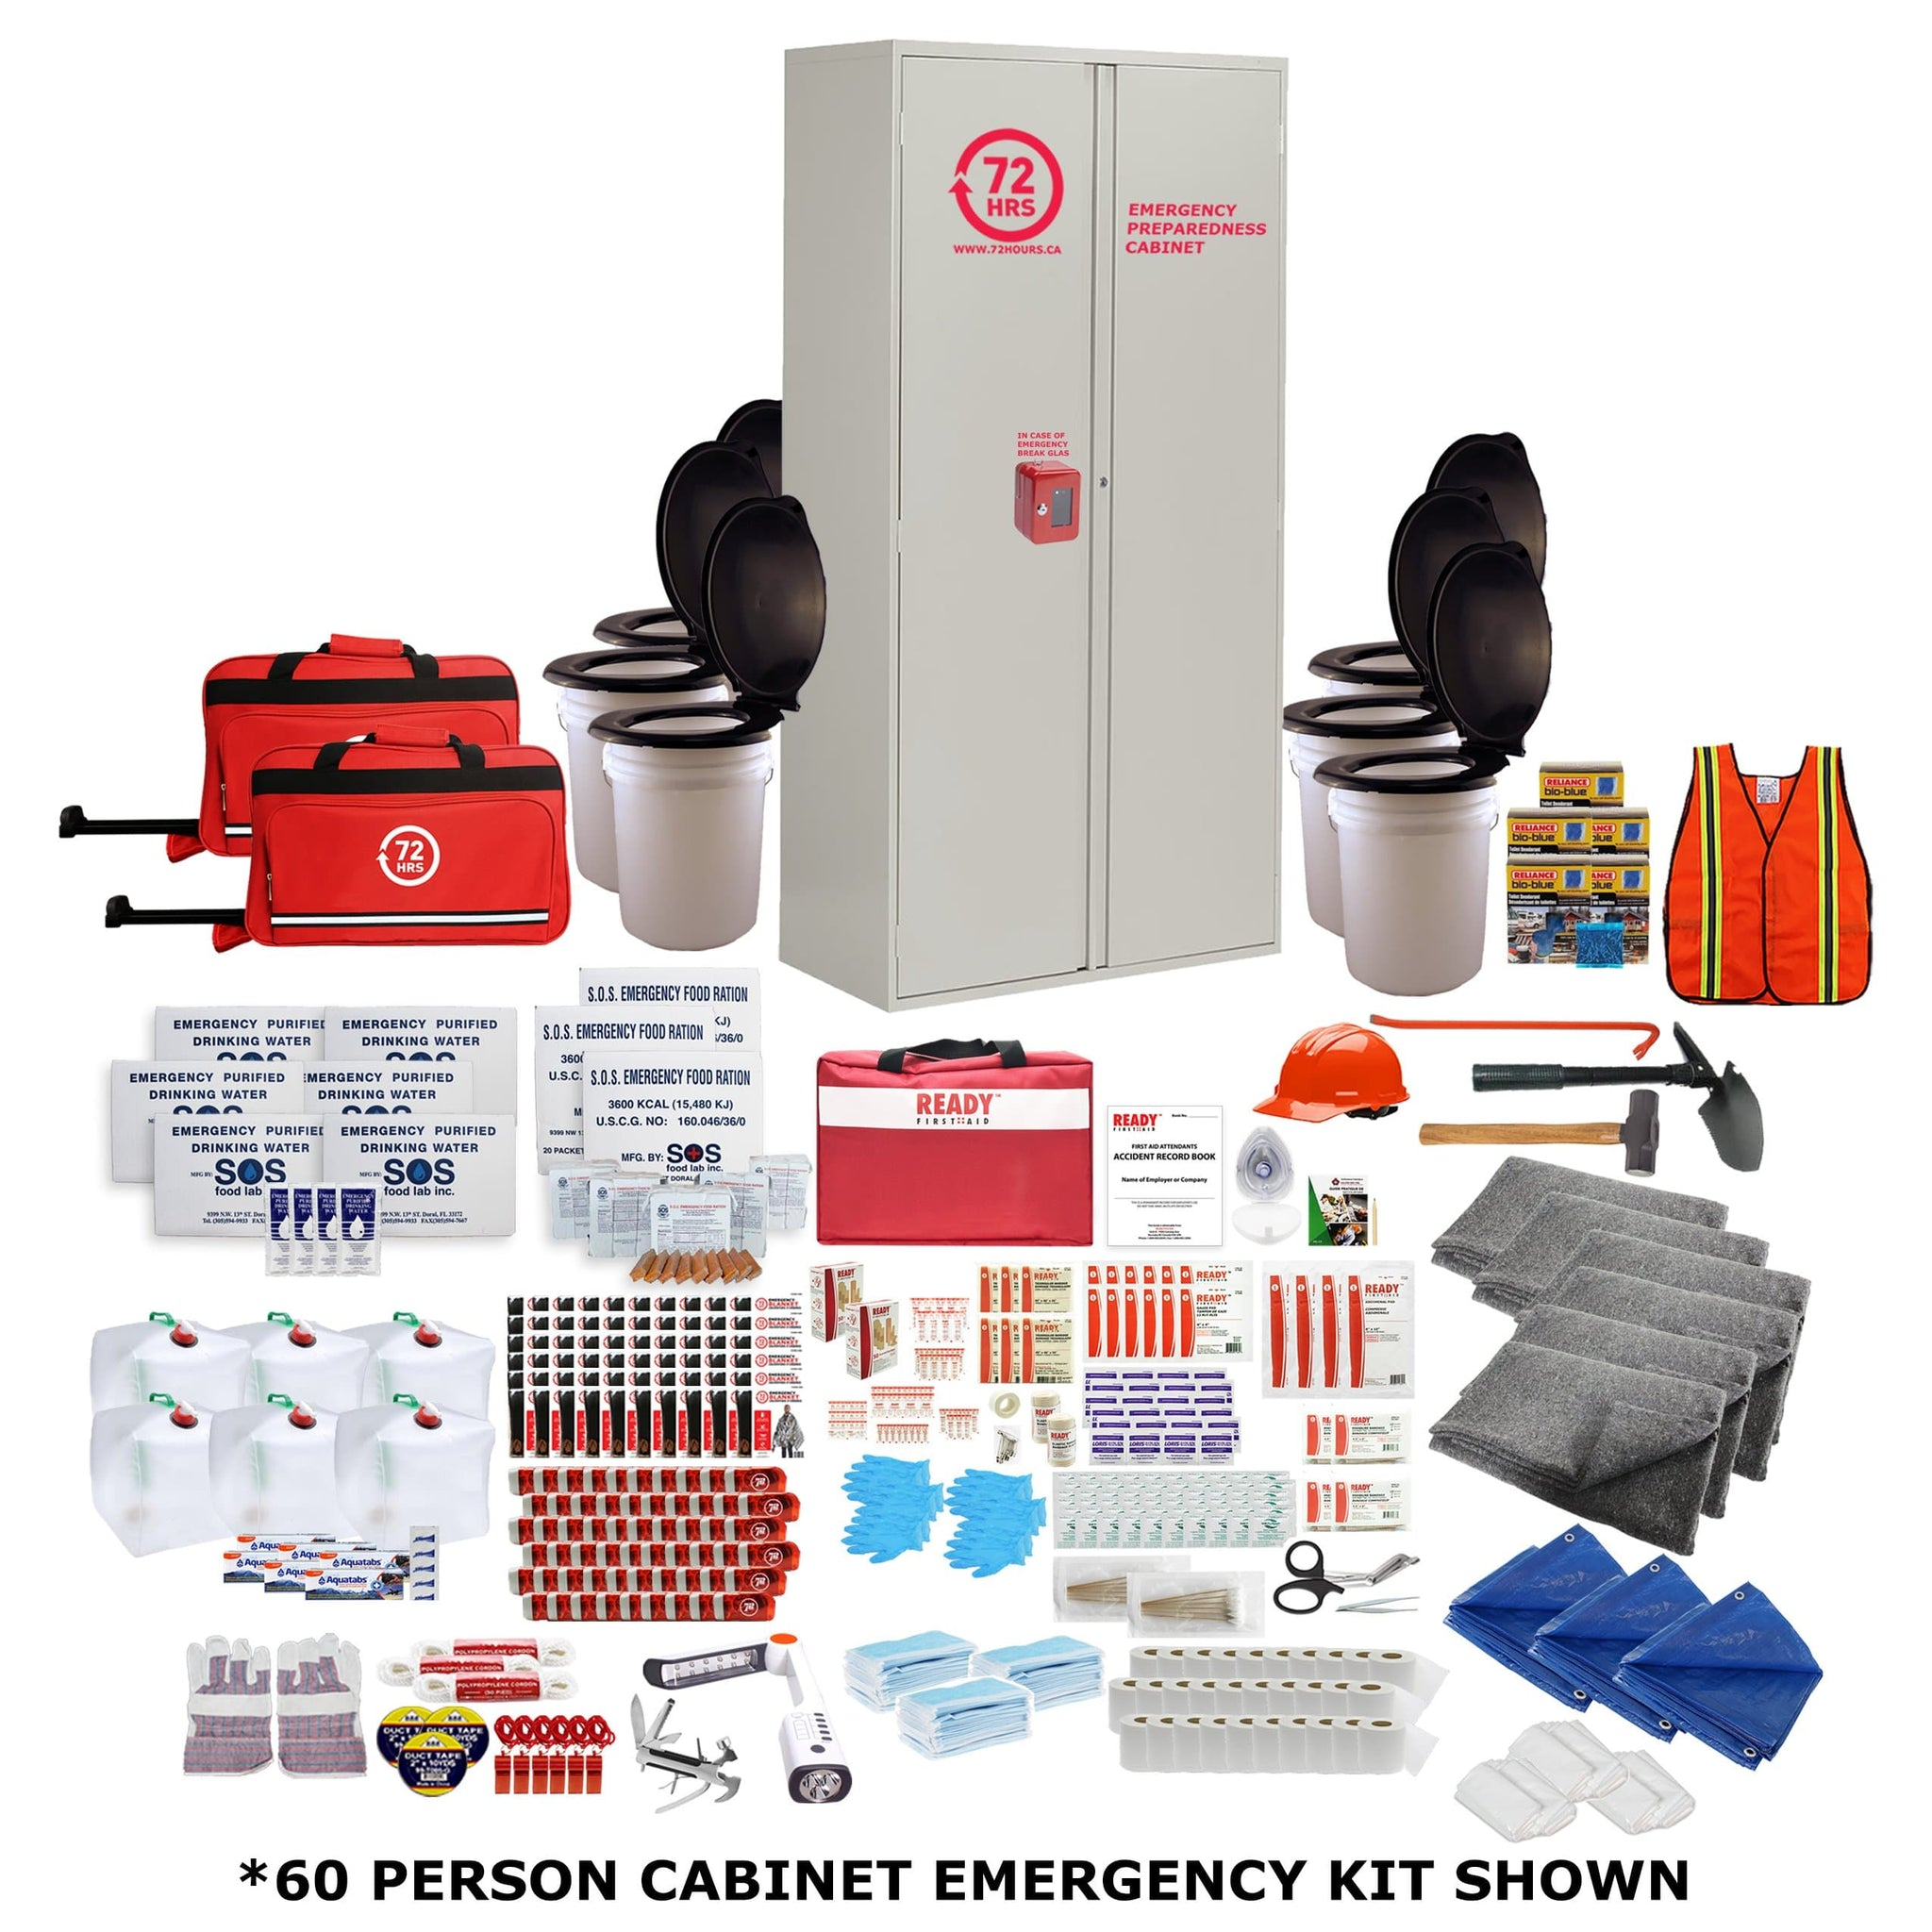 250 Person Emergency Cabinet Kit